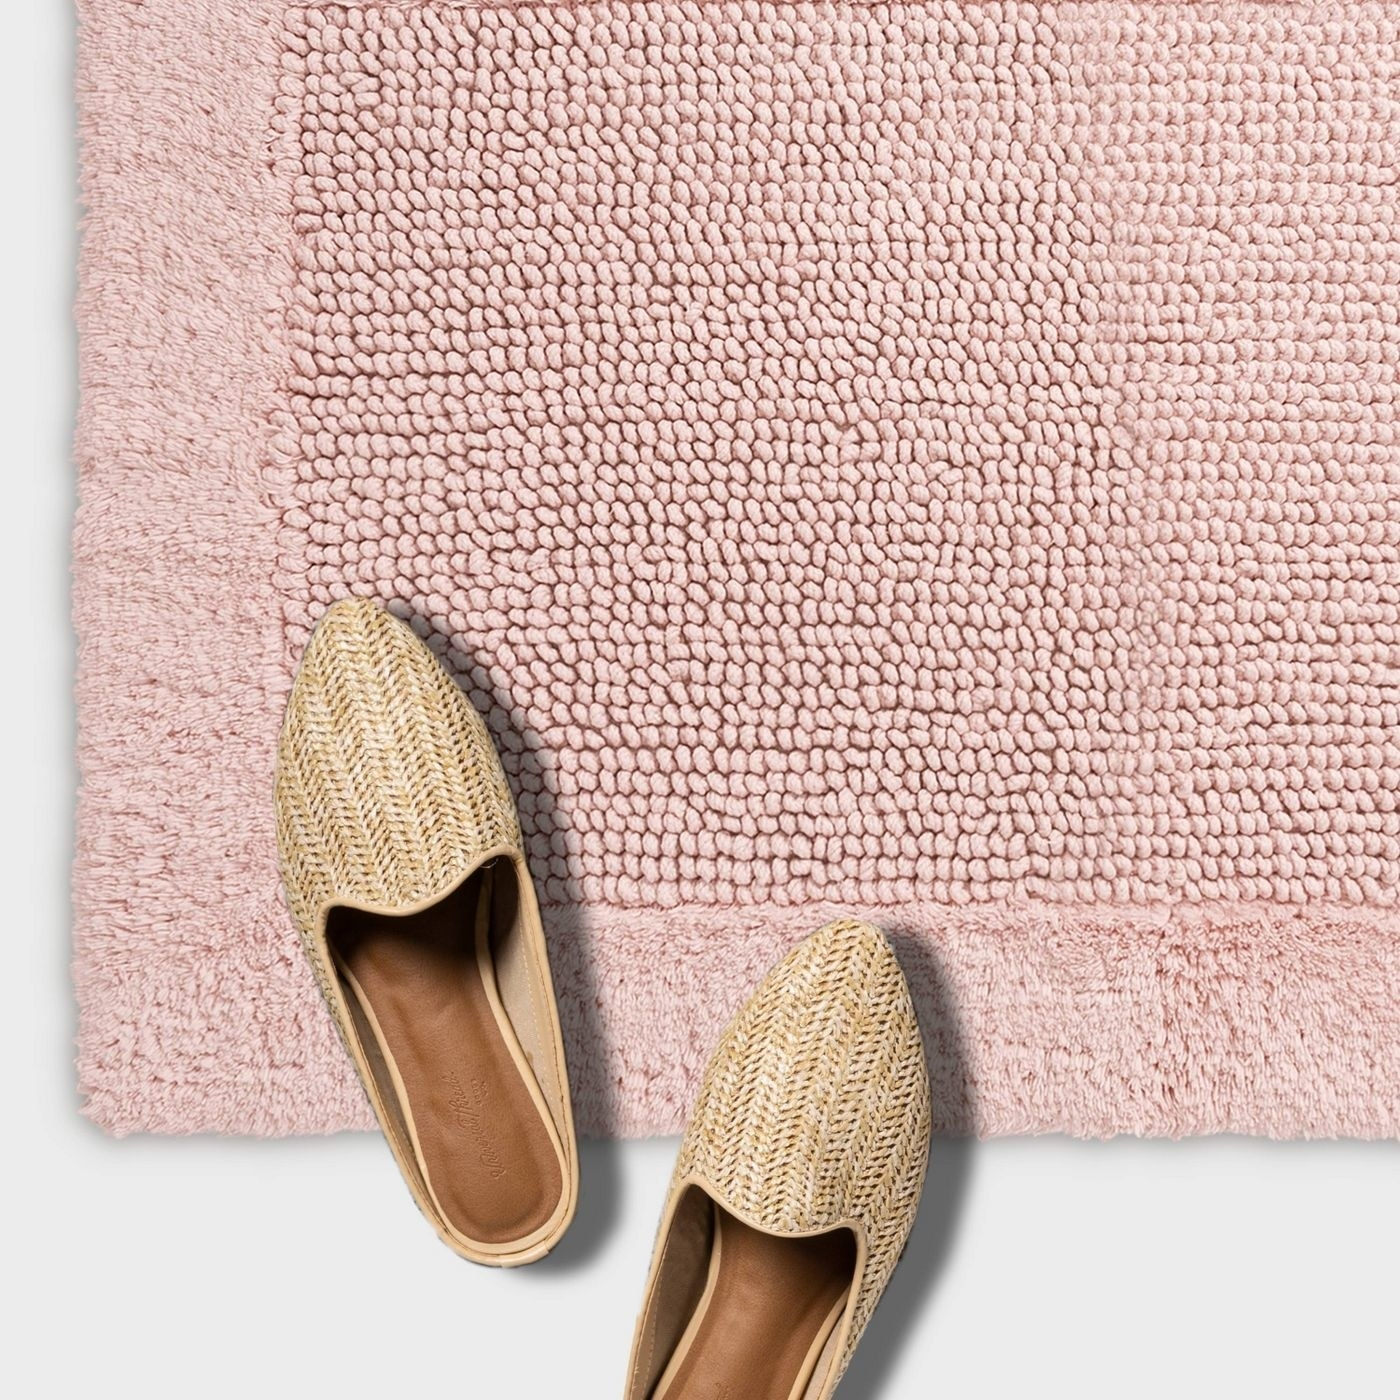 Pink tufted rug with tan slip on shoes resting on it